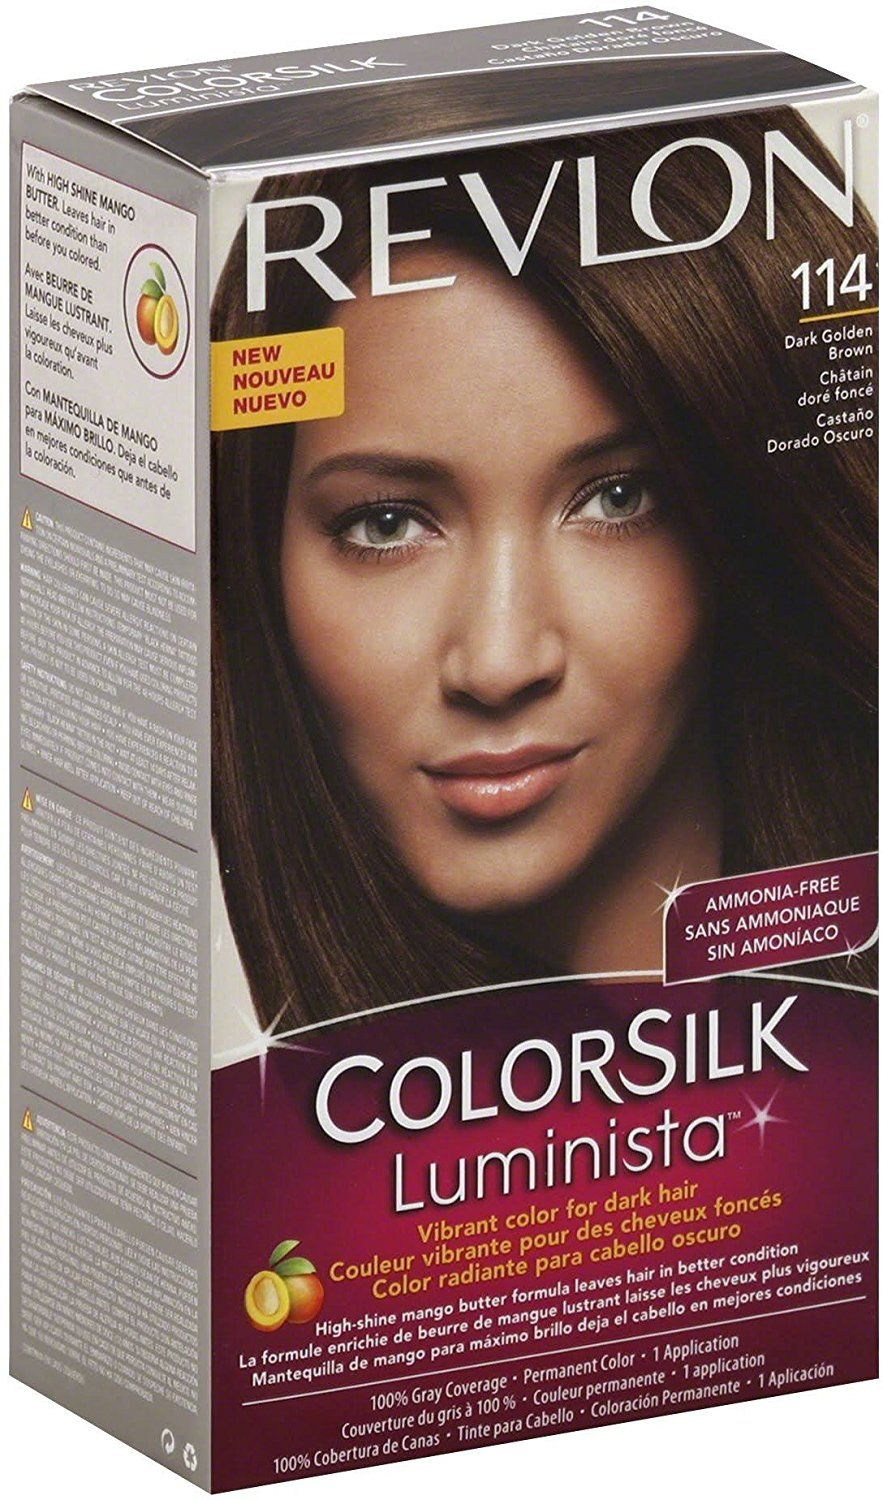 Revlon Colorsilk Luminista Hair Color 114